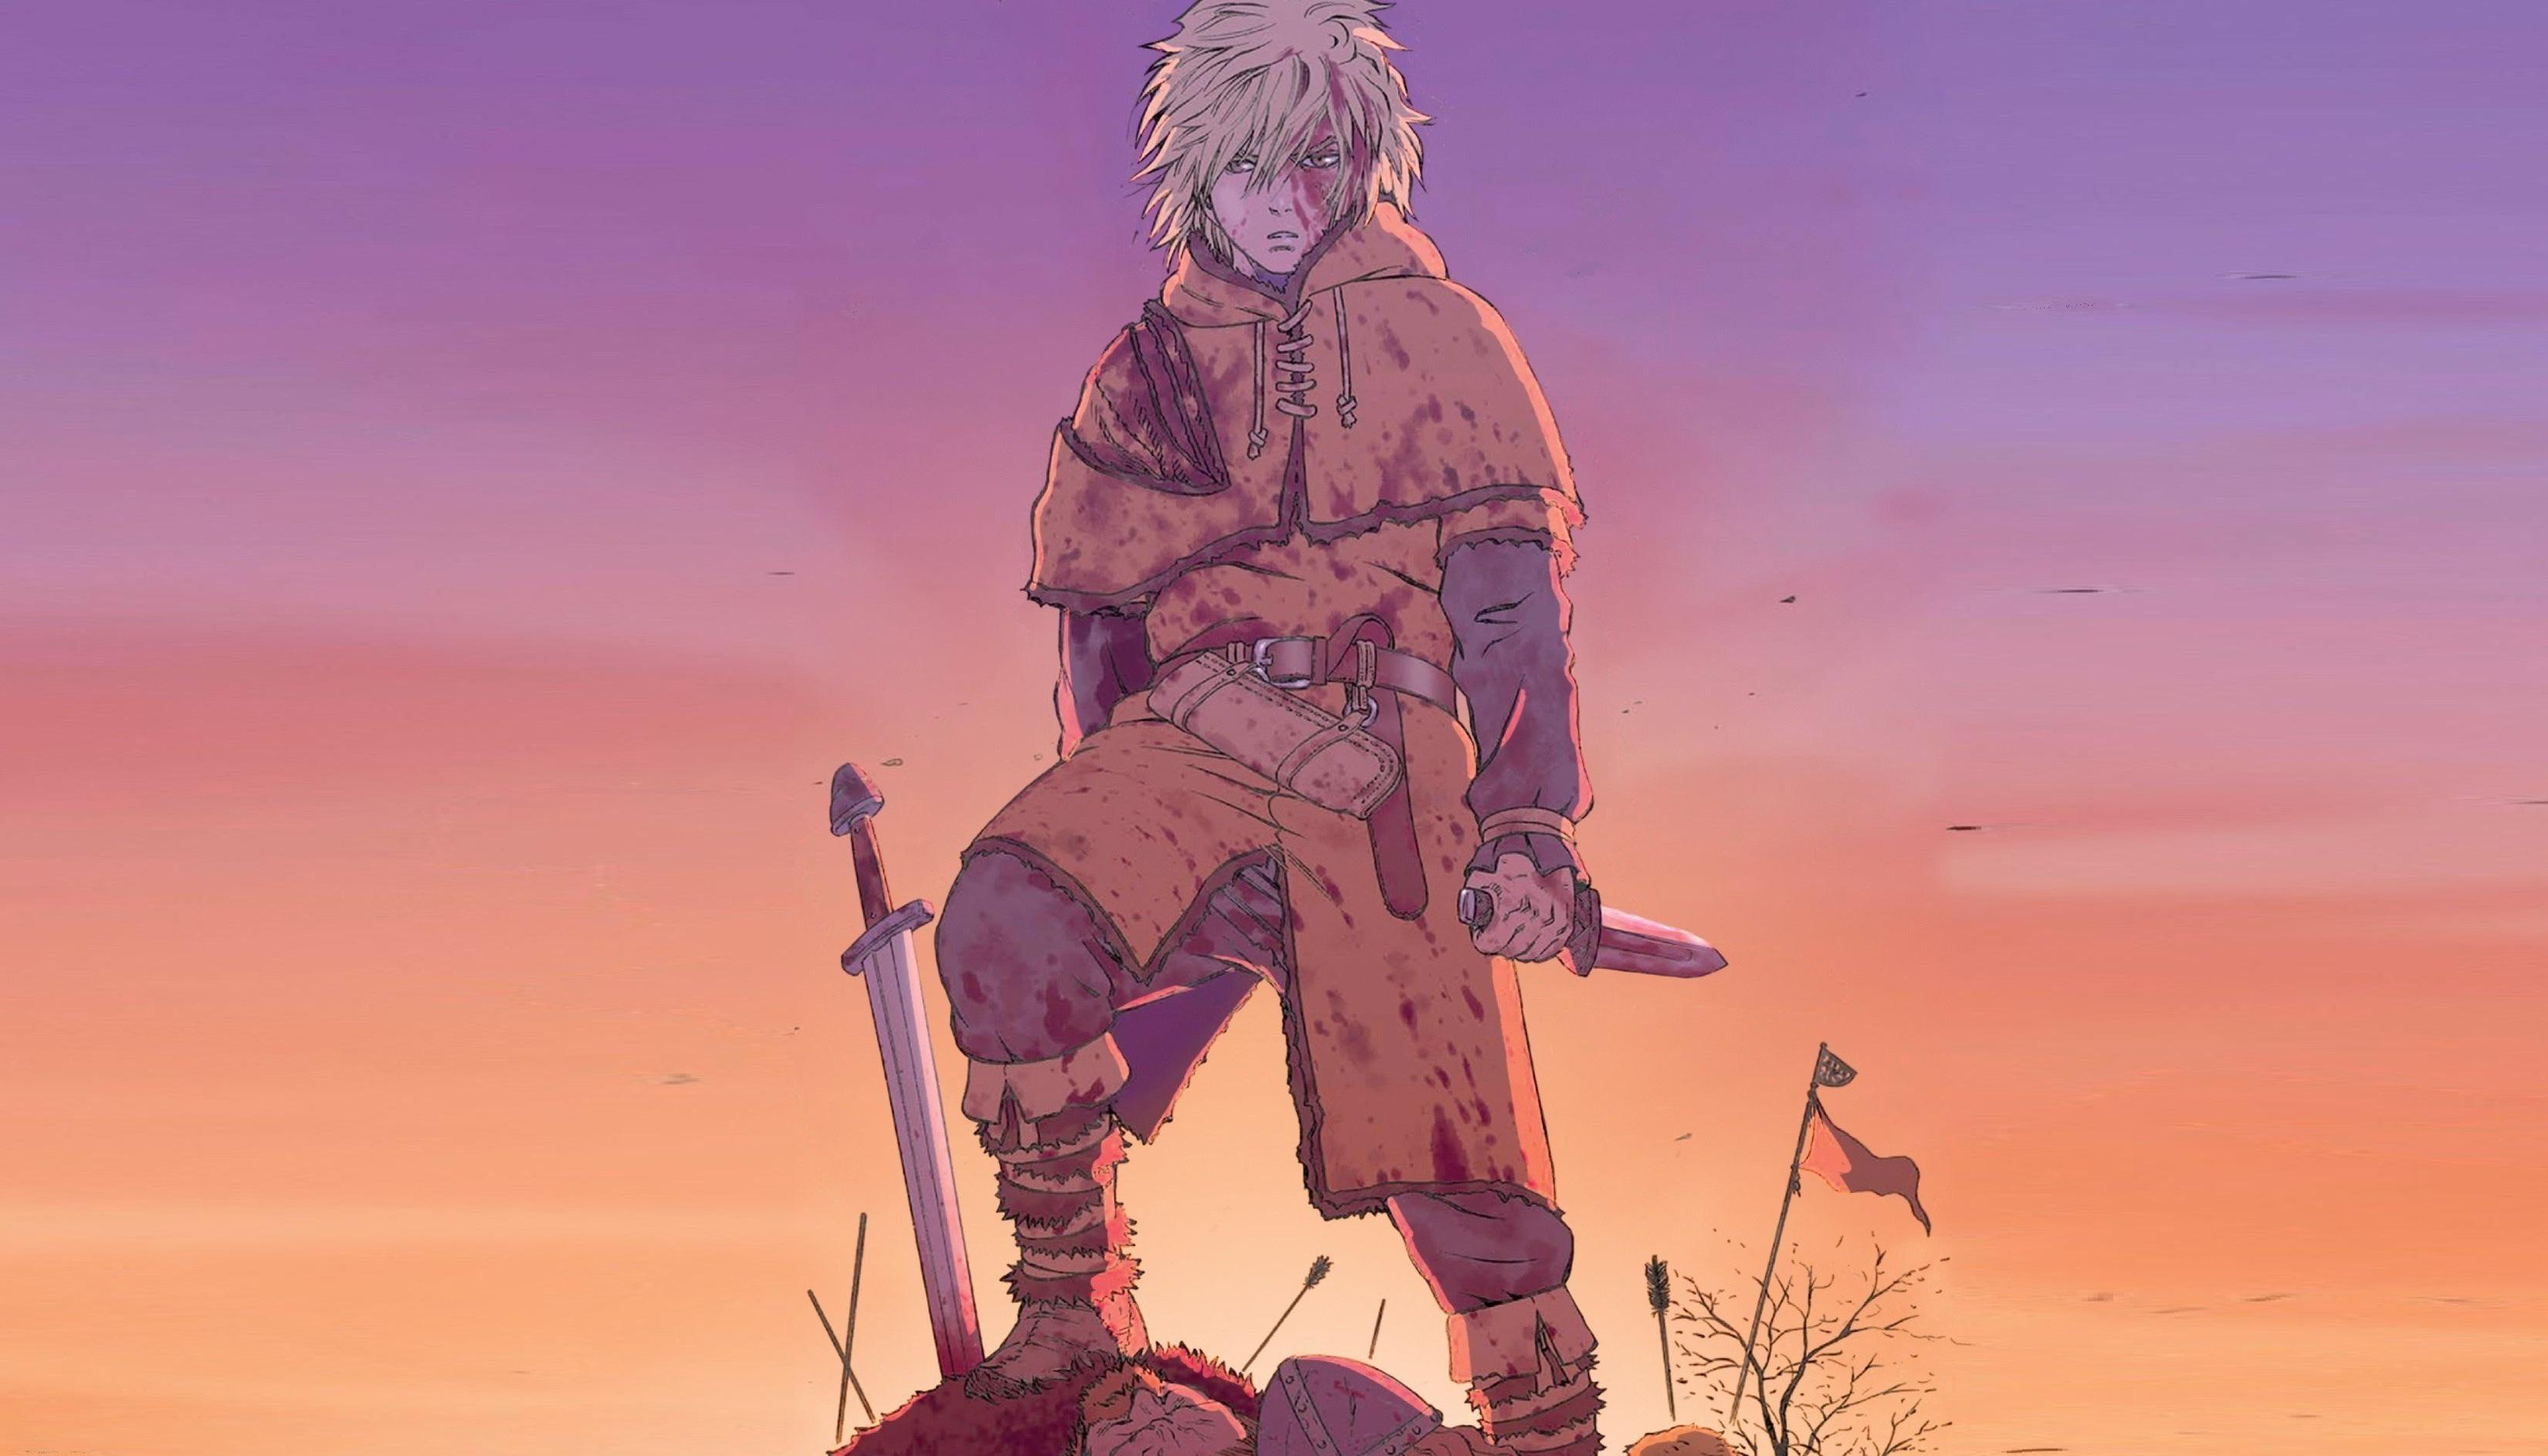 Thorfinn Wallpapers Wallpaper Cave